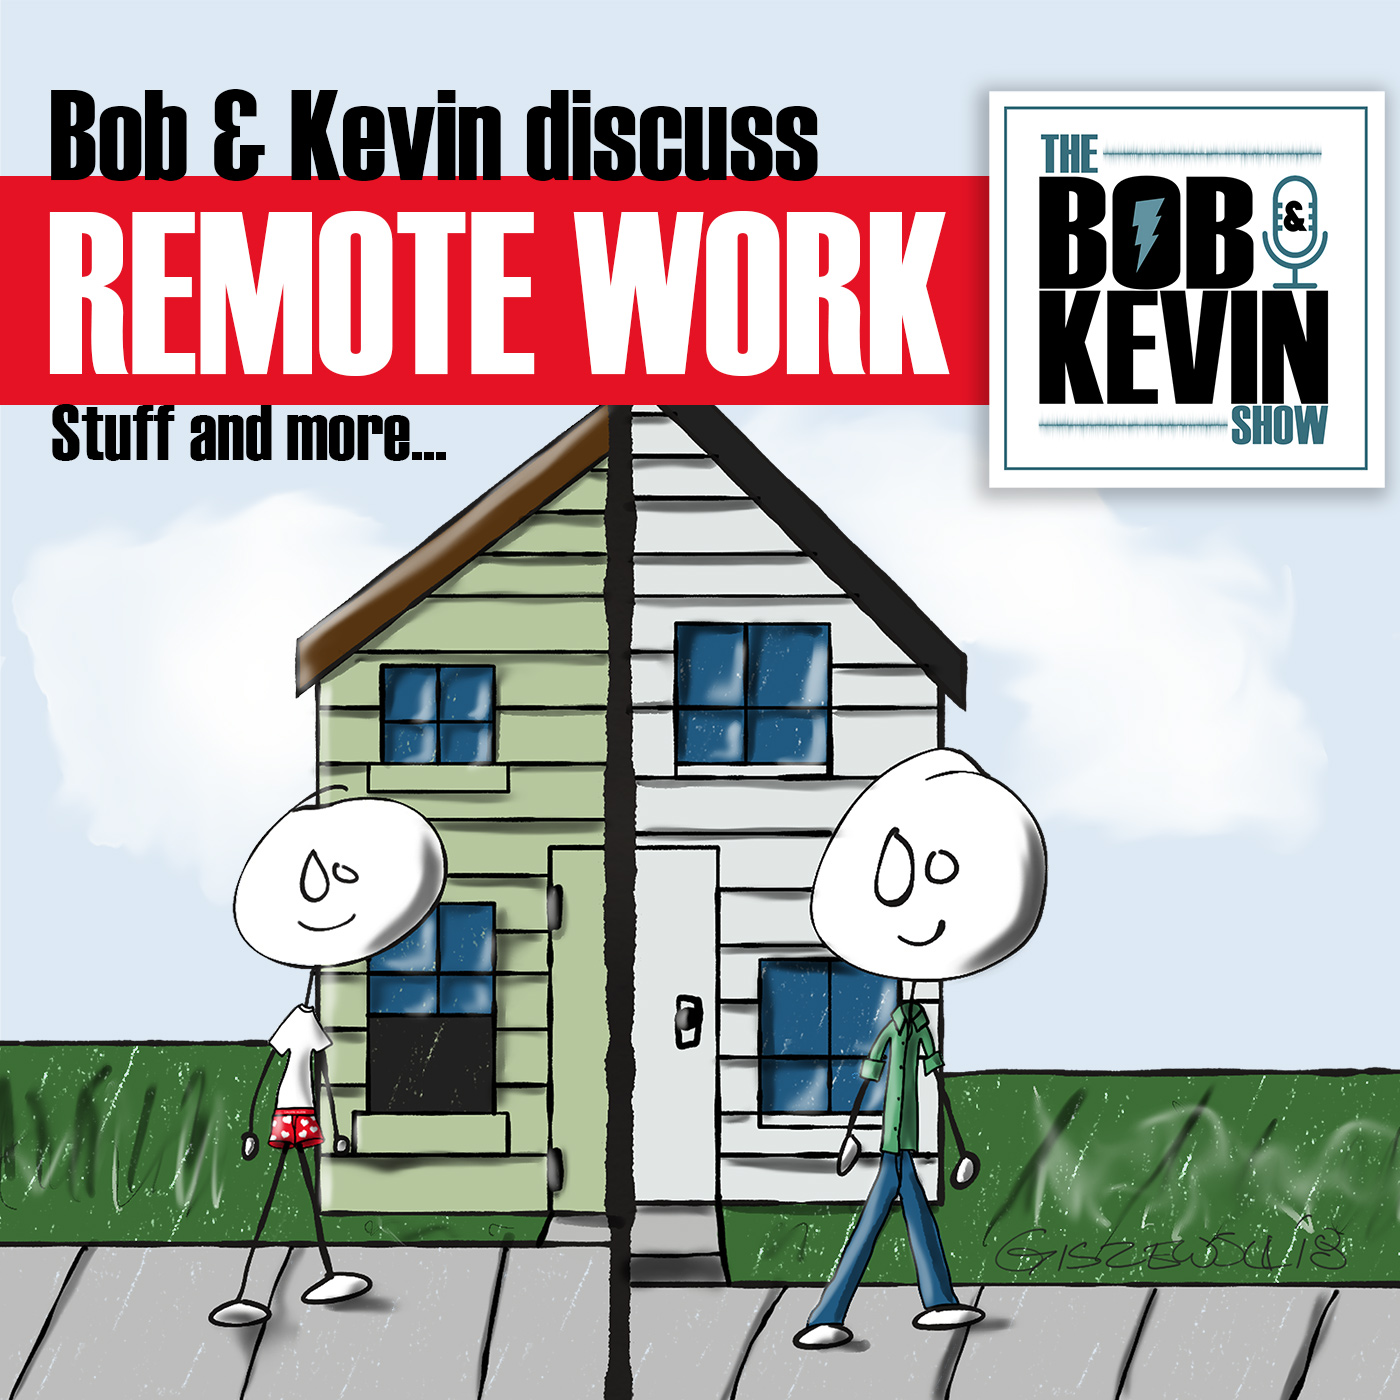 Ep. 021 - Remote work habits - good, bad and ugly